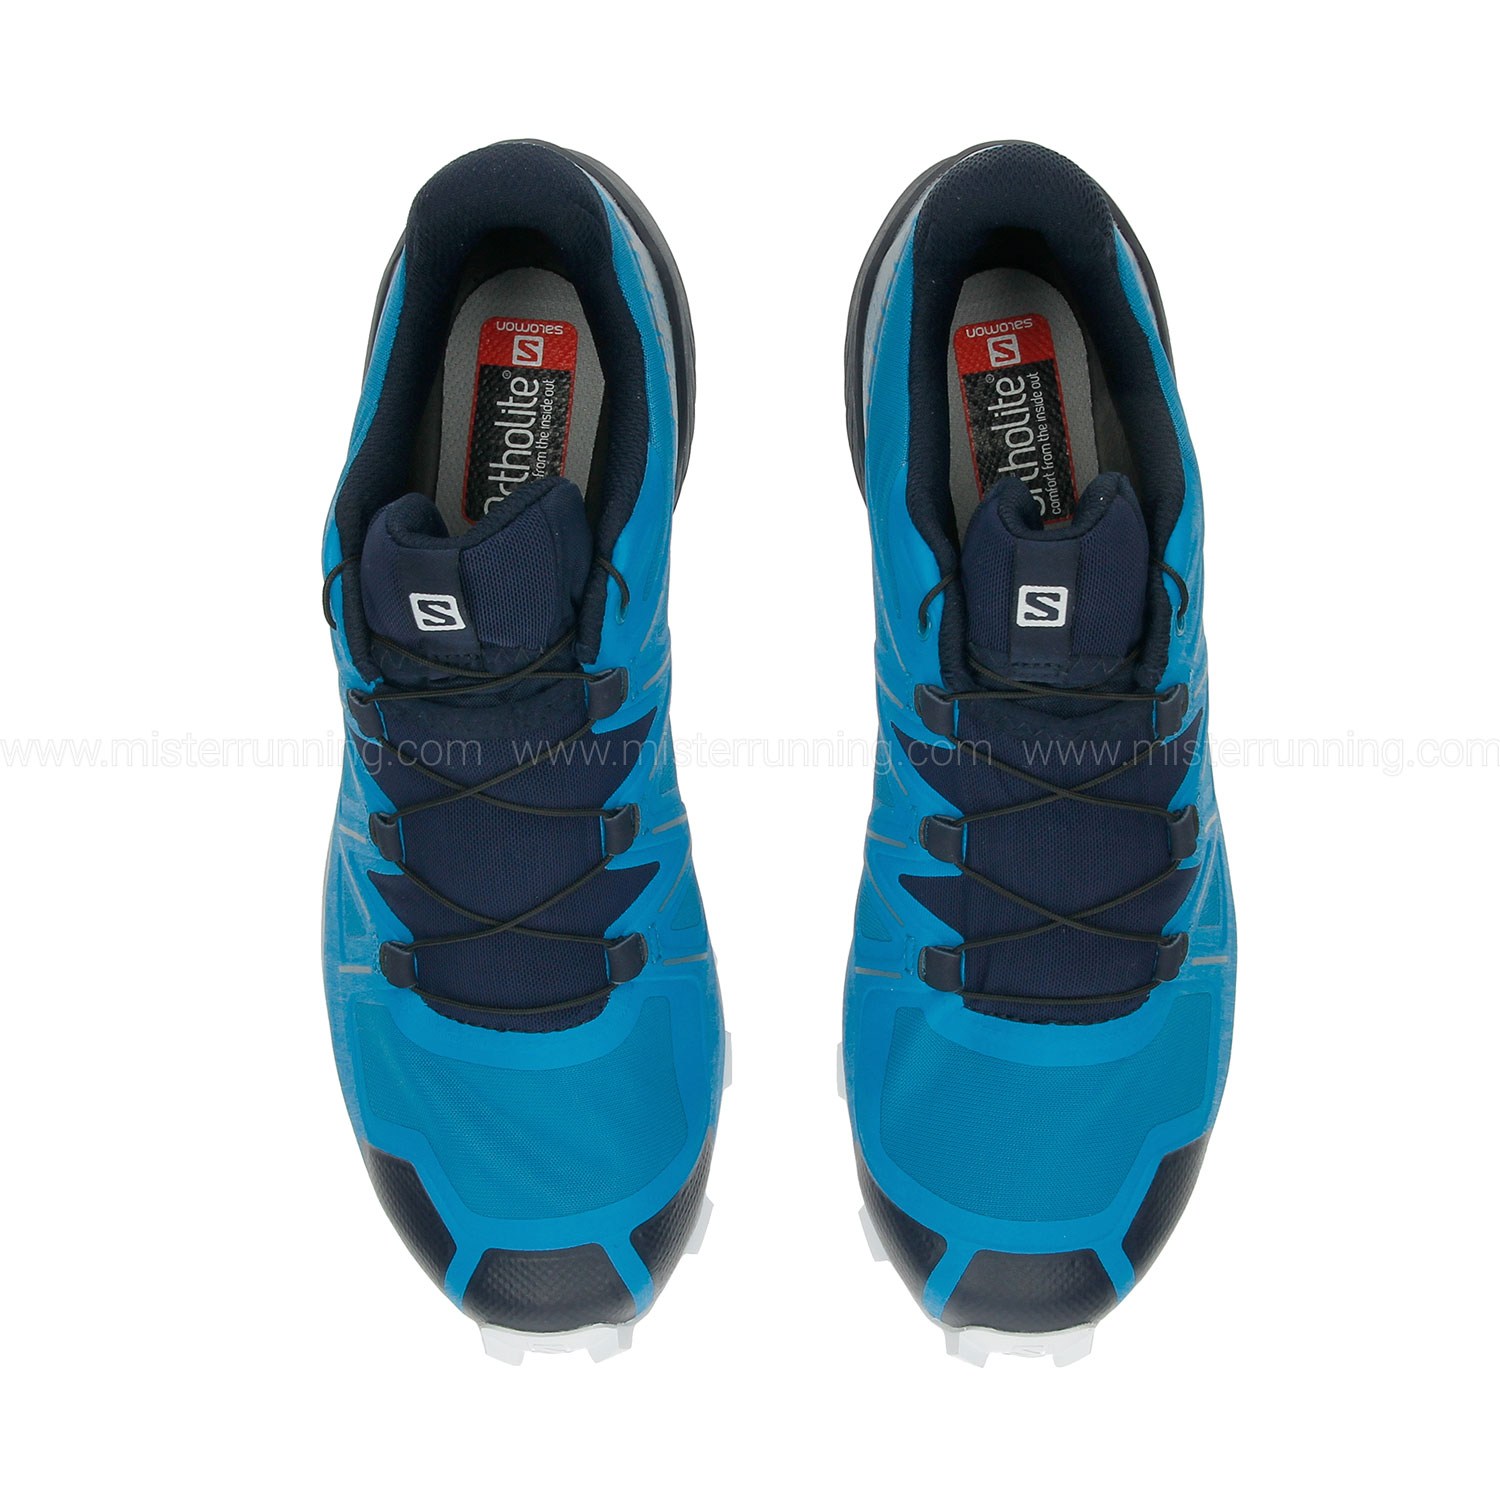 Salomon Speedcross 5 - Fjord Blue/Navy Blazer/Illusion Blue